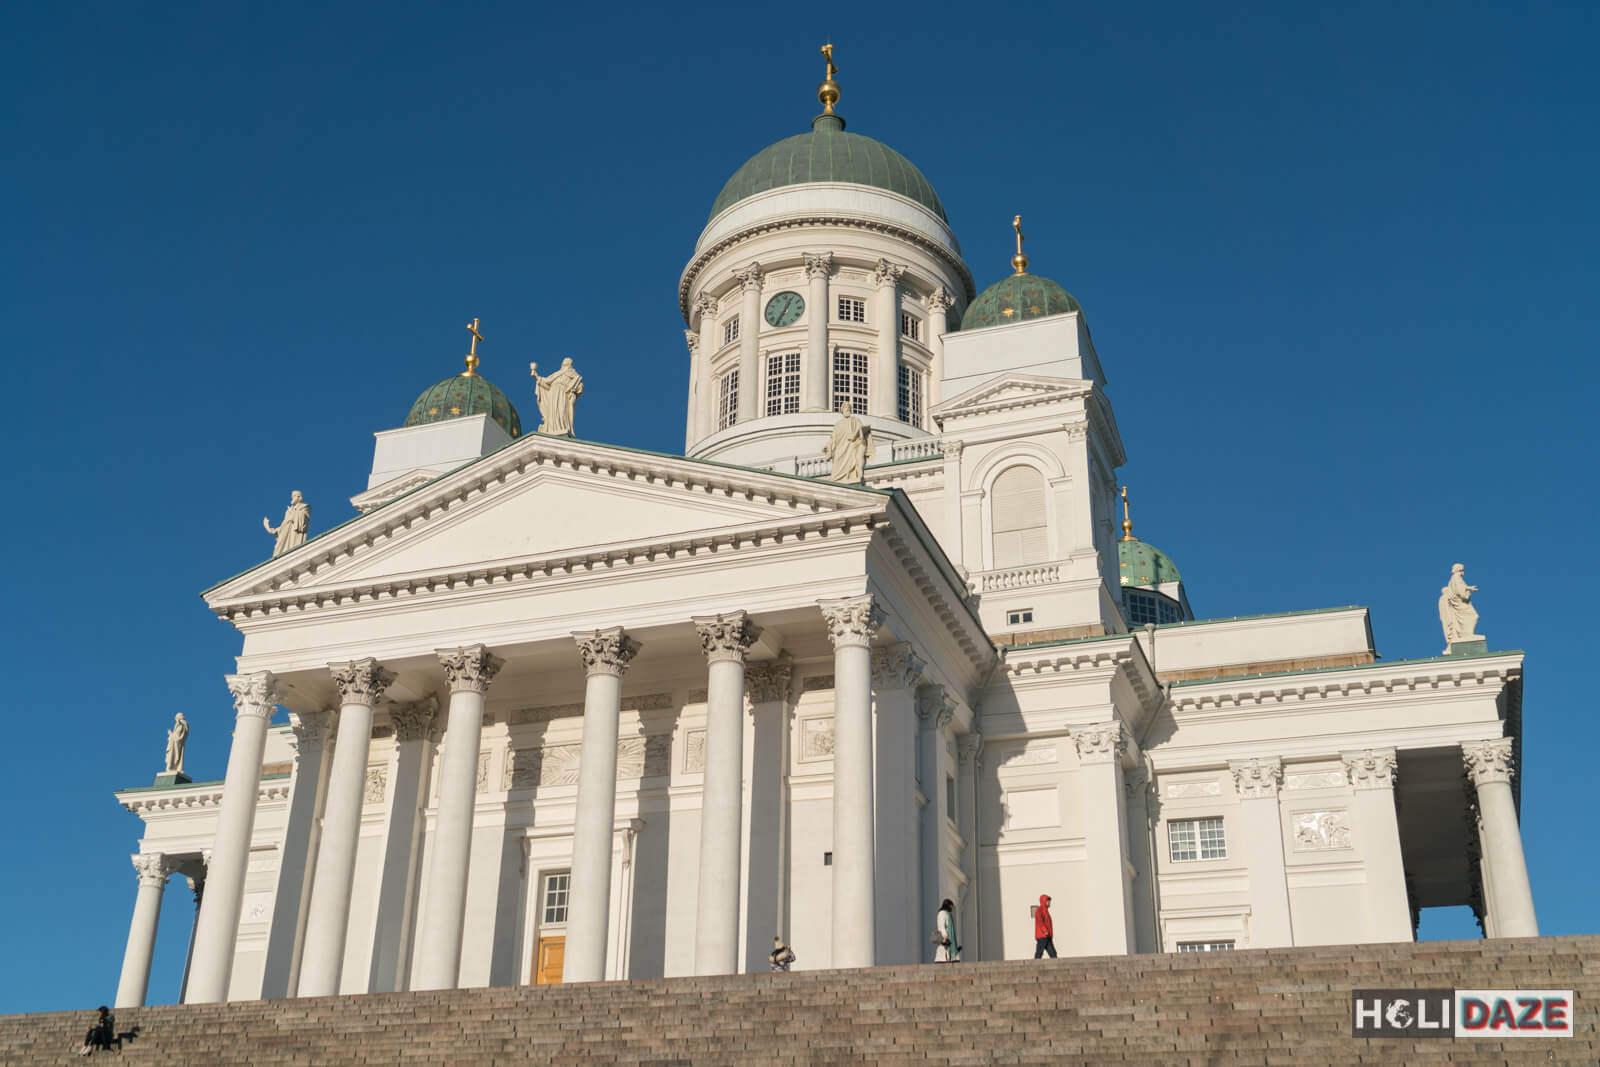 The Helsinki Cathedral on a beautiful blue day without a cloud in sight....great first impression of Finland!